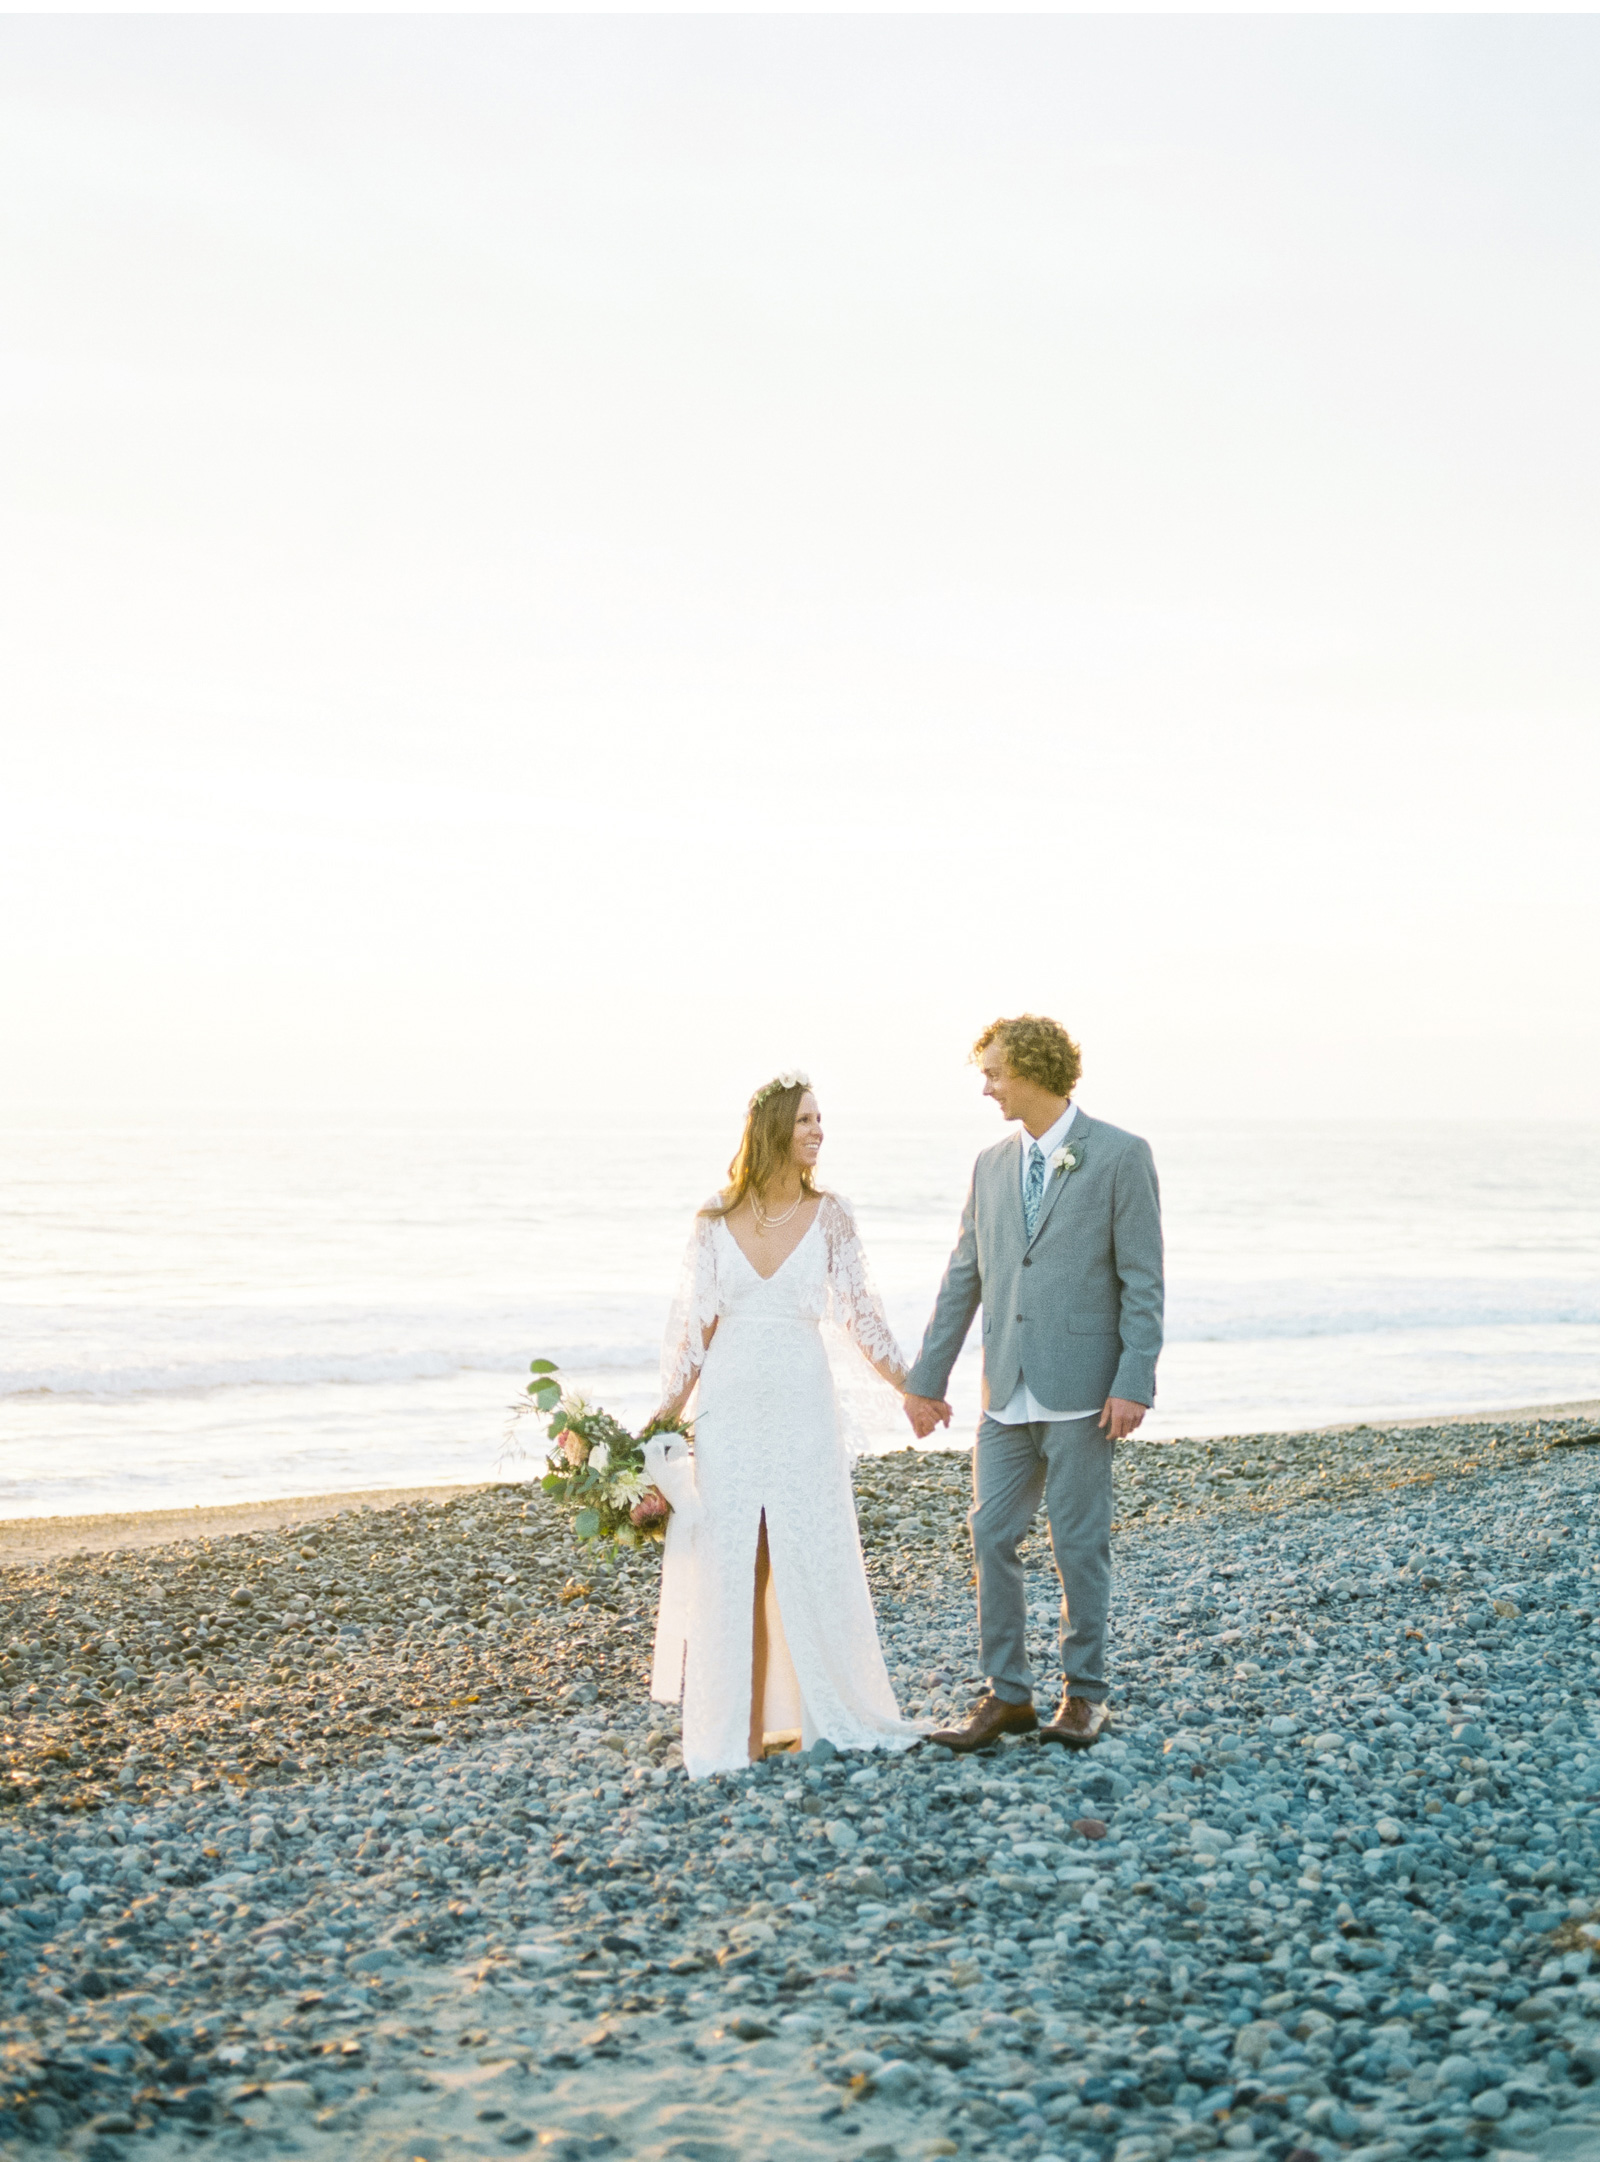 Surf-Wedding-Natalie-Schutt-Photography-Wedding-Chicks_13.jpg